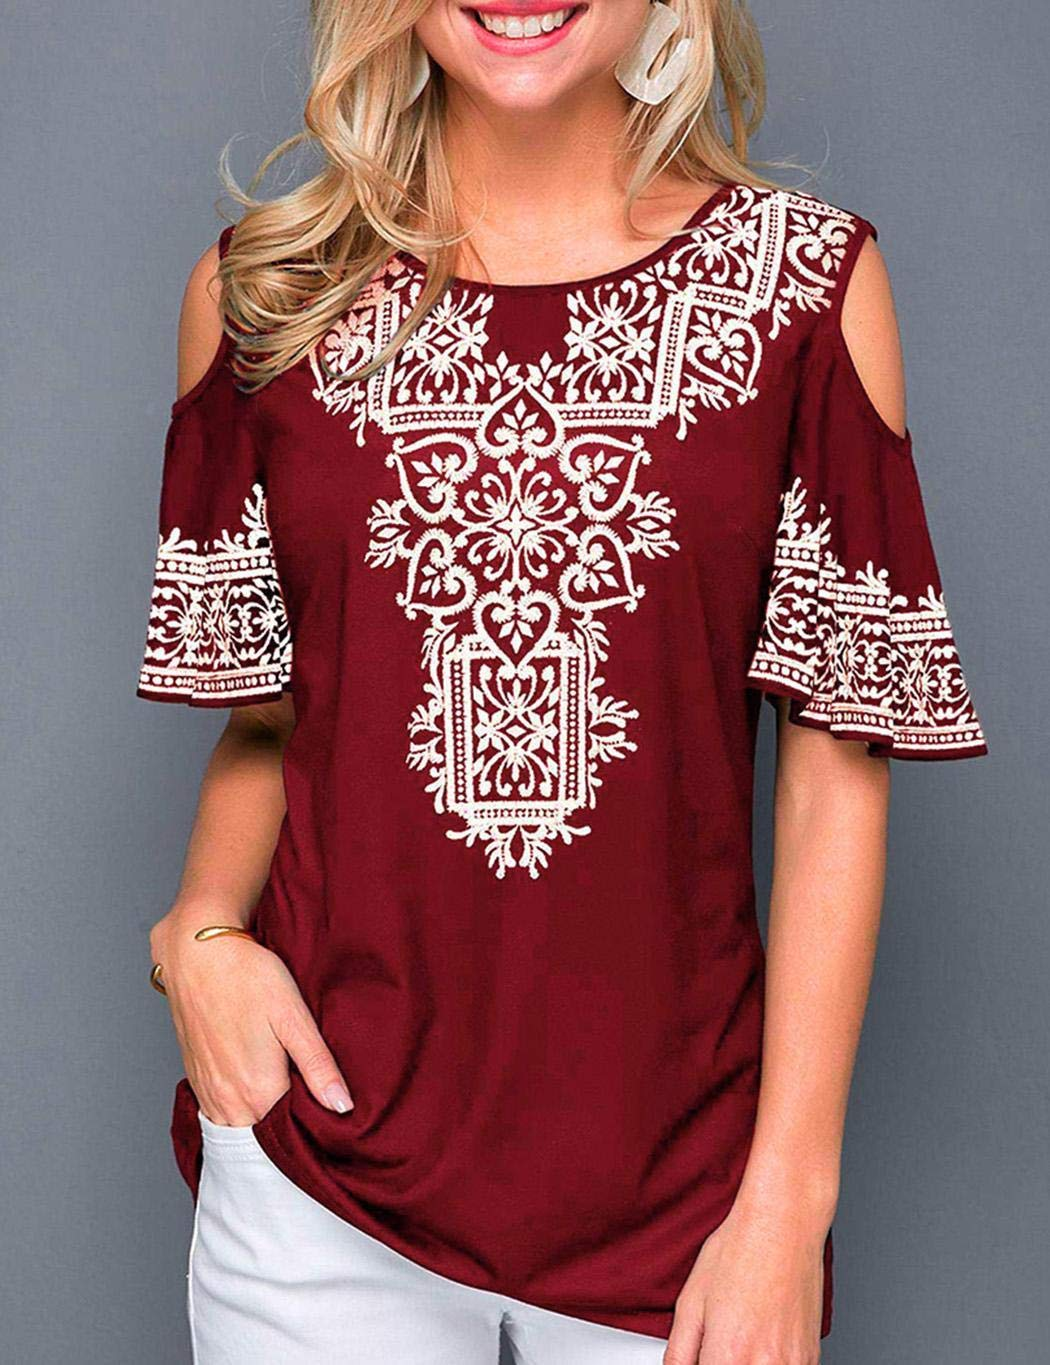 UpBeauty Women Summer O Neck Printed Short Sleeve T-Shirt Casual Off Shoulder Top Knits & Tees S-5XL Red